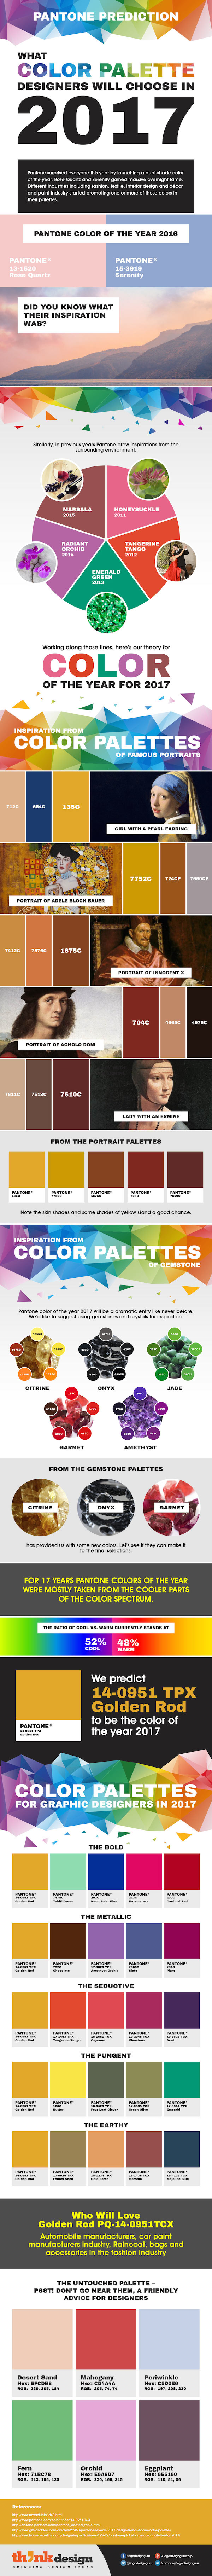 2-Infographic-PANTONE-prediction-color-palettes-designers-choose-in-2017